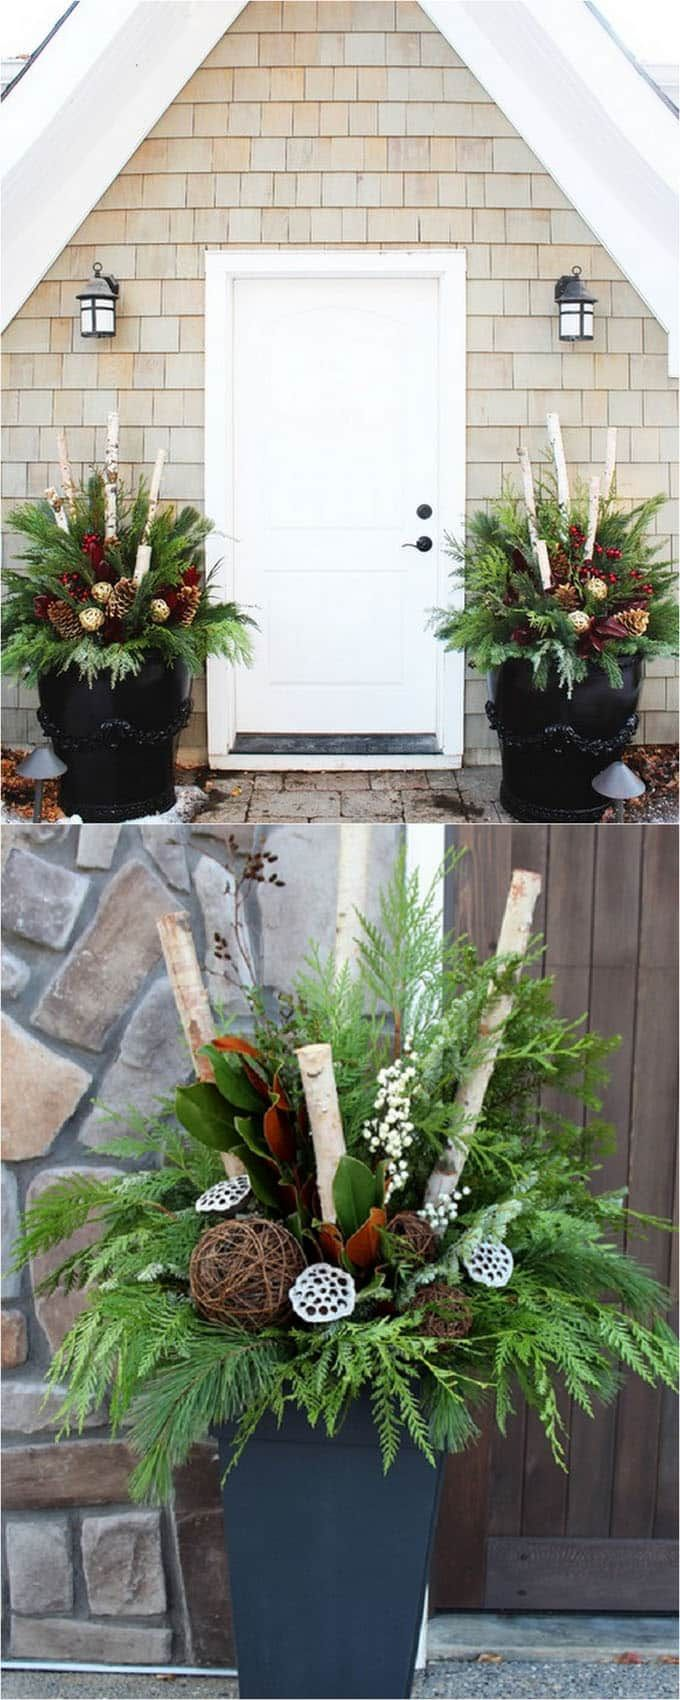 24 colorful winter planters  u0026 christmas outdoor decorations